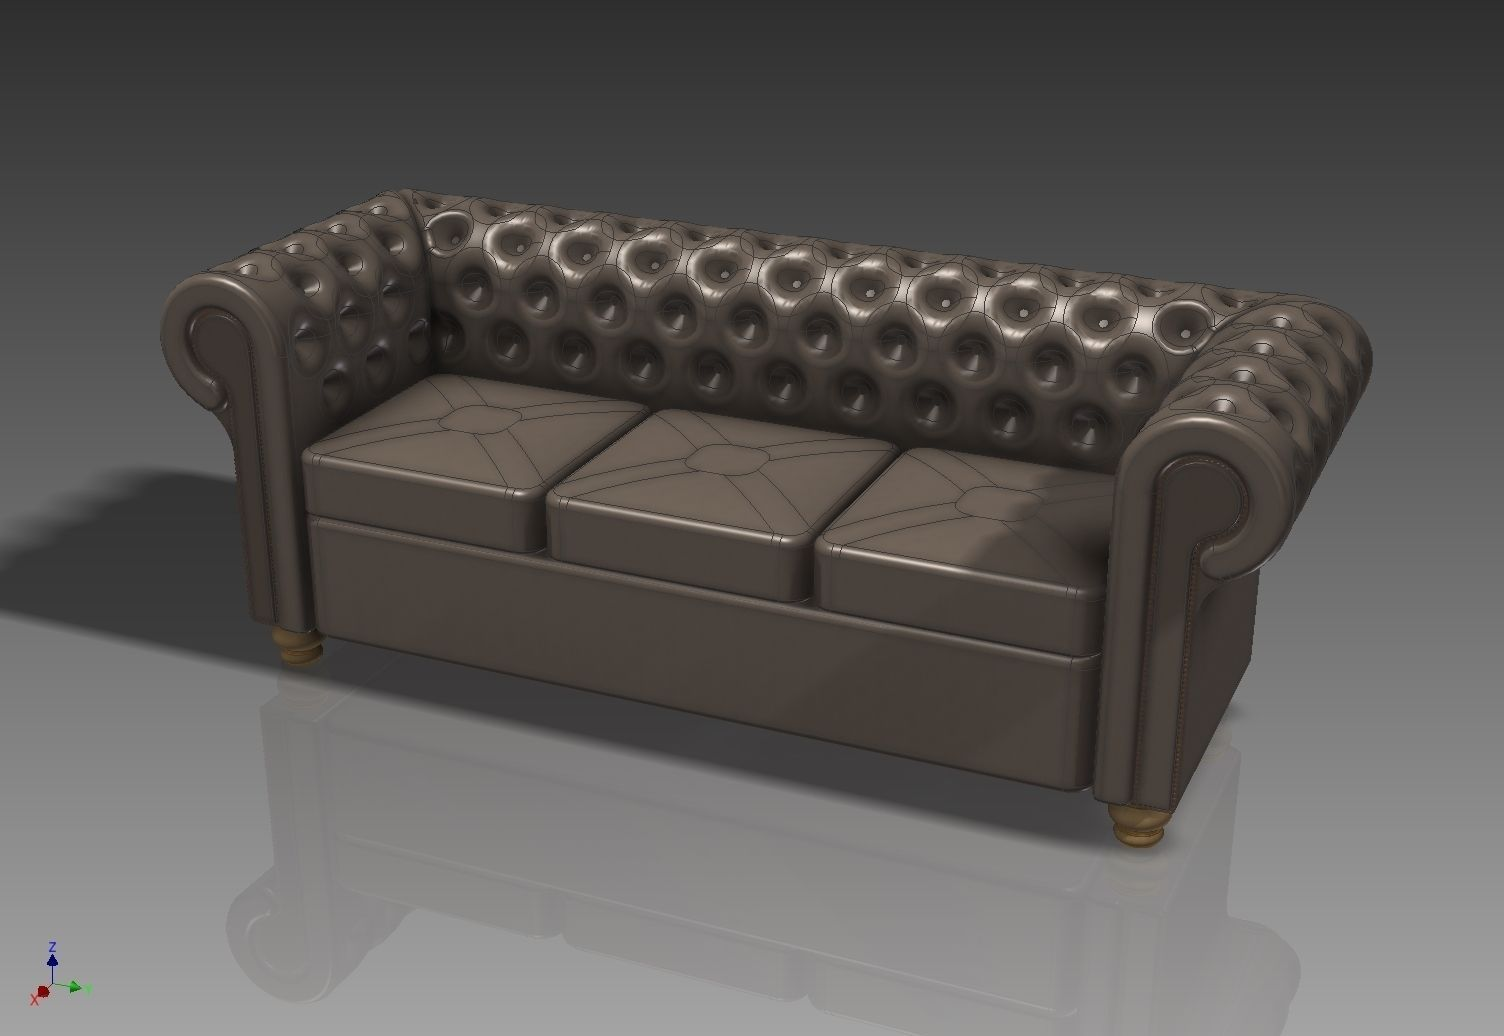 Chesterfield sofa 3d model max obj 3ds stl stp for Sofa 3d model